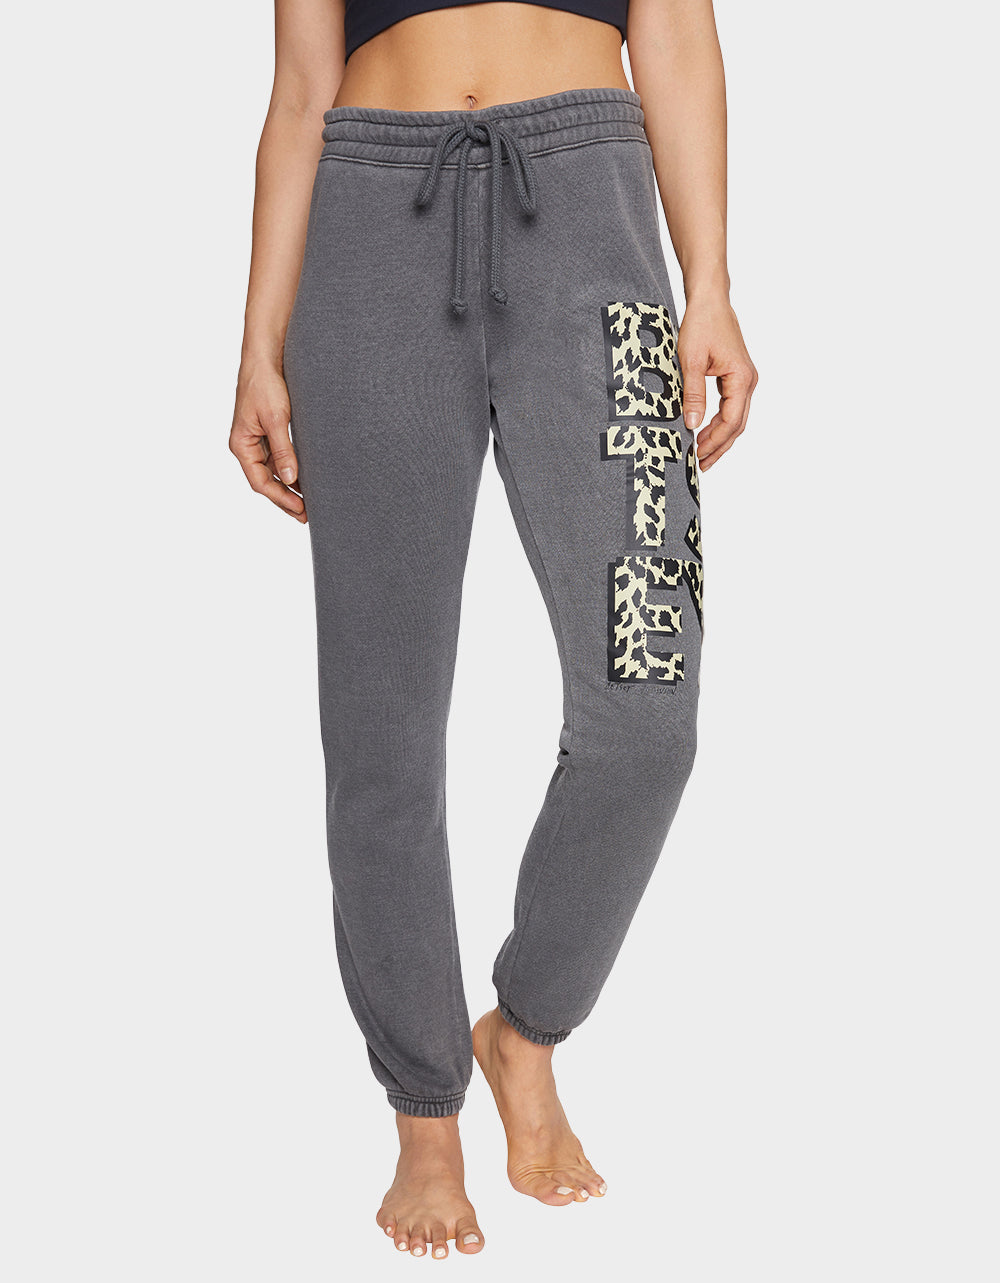 BETSEY IS WILD SWEATPANT BLACK - APPAREL - Betsey Johnson